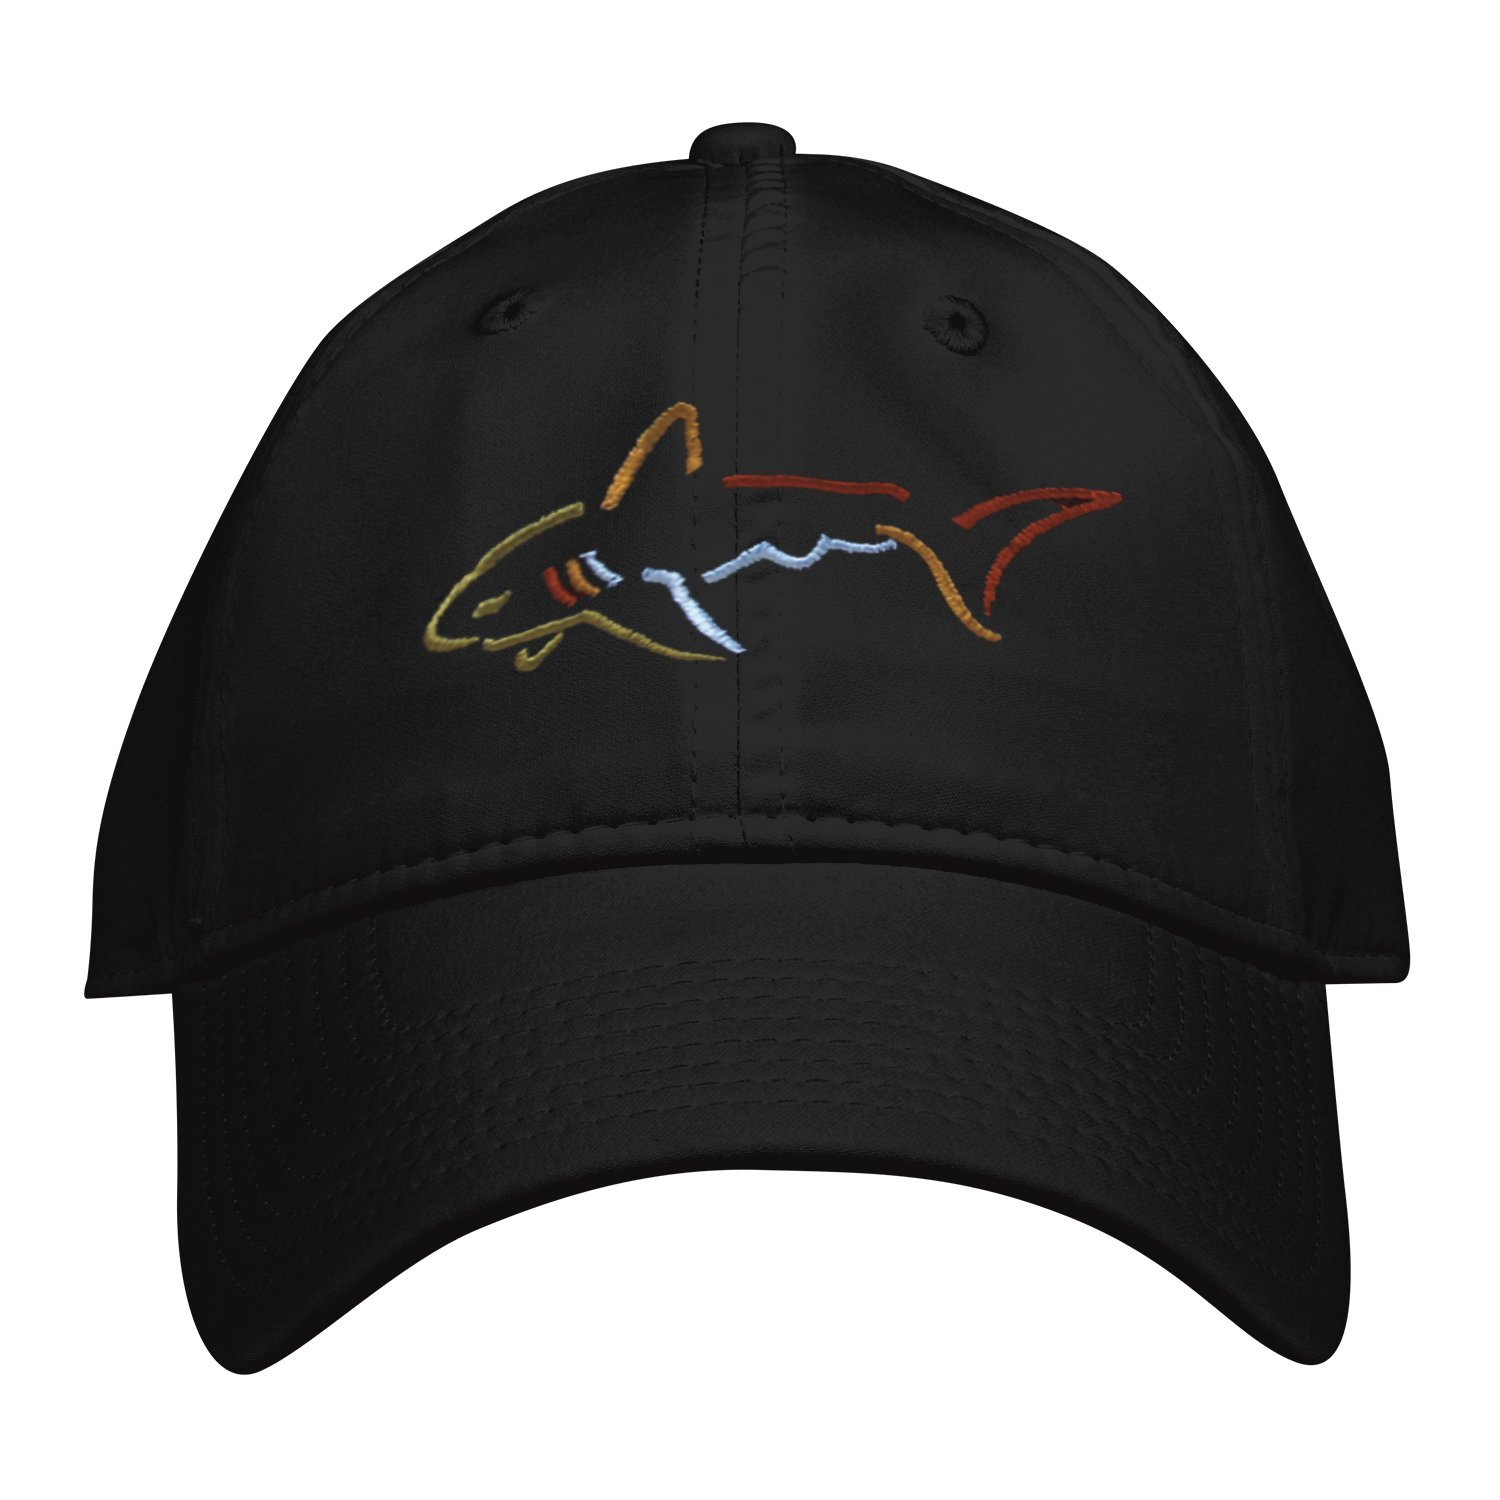 98a88afb5cf The Game Greg Norman 2017 Performance Adjustable Unstructured Hat